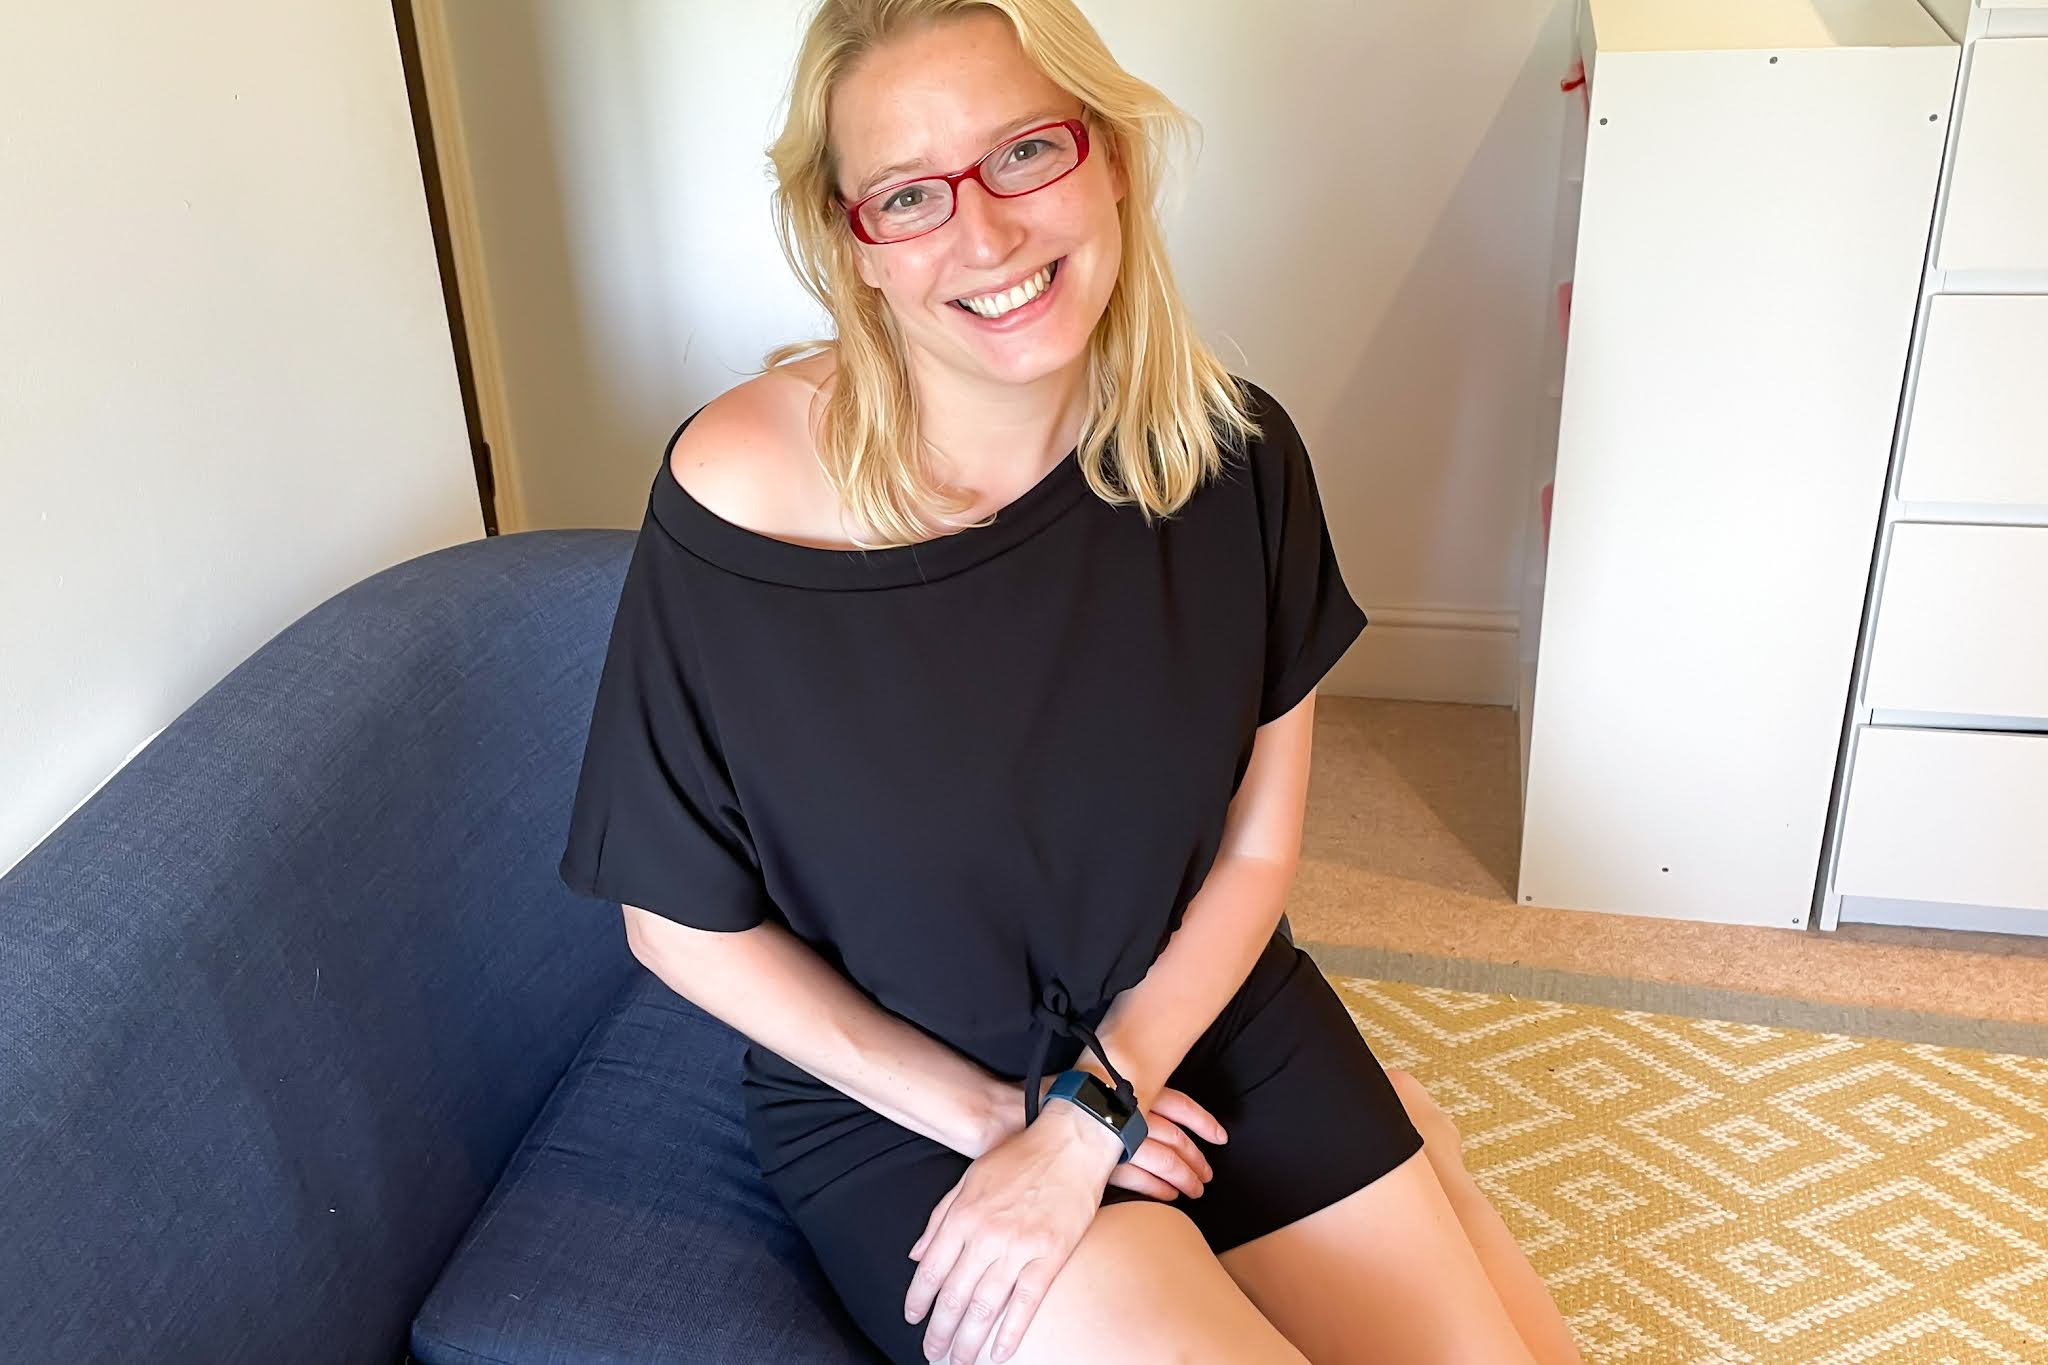 Sitting on a sofa wearing a black top and shorts and smiling to be happy wearing black